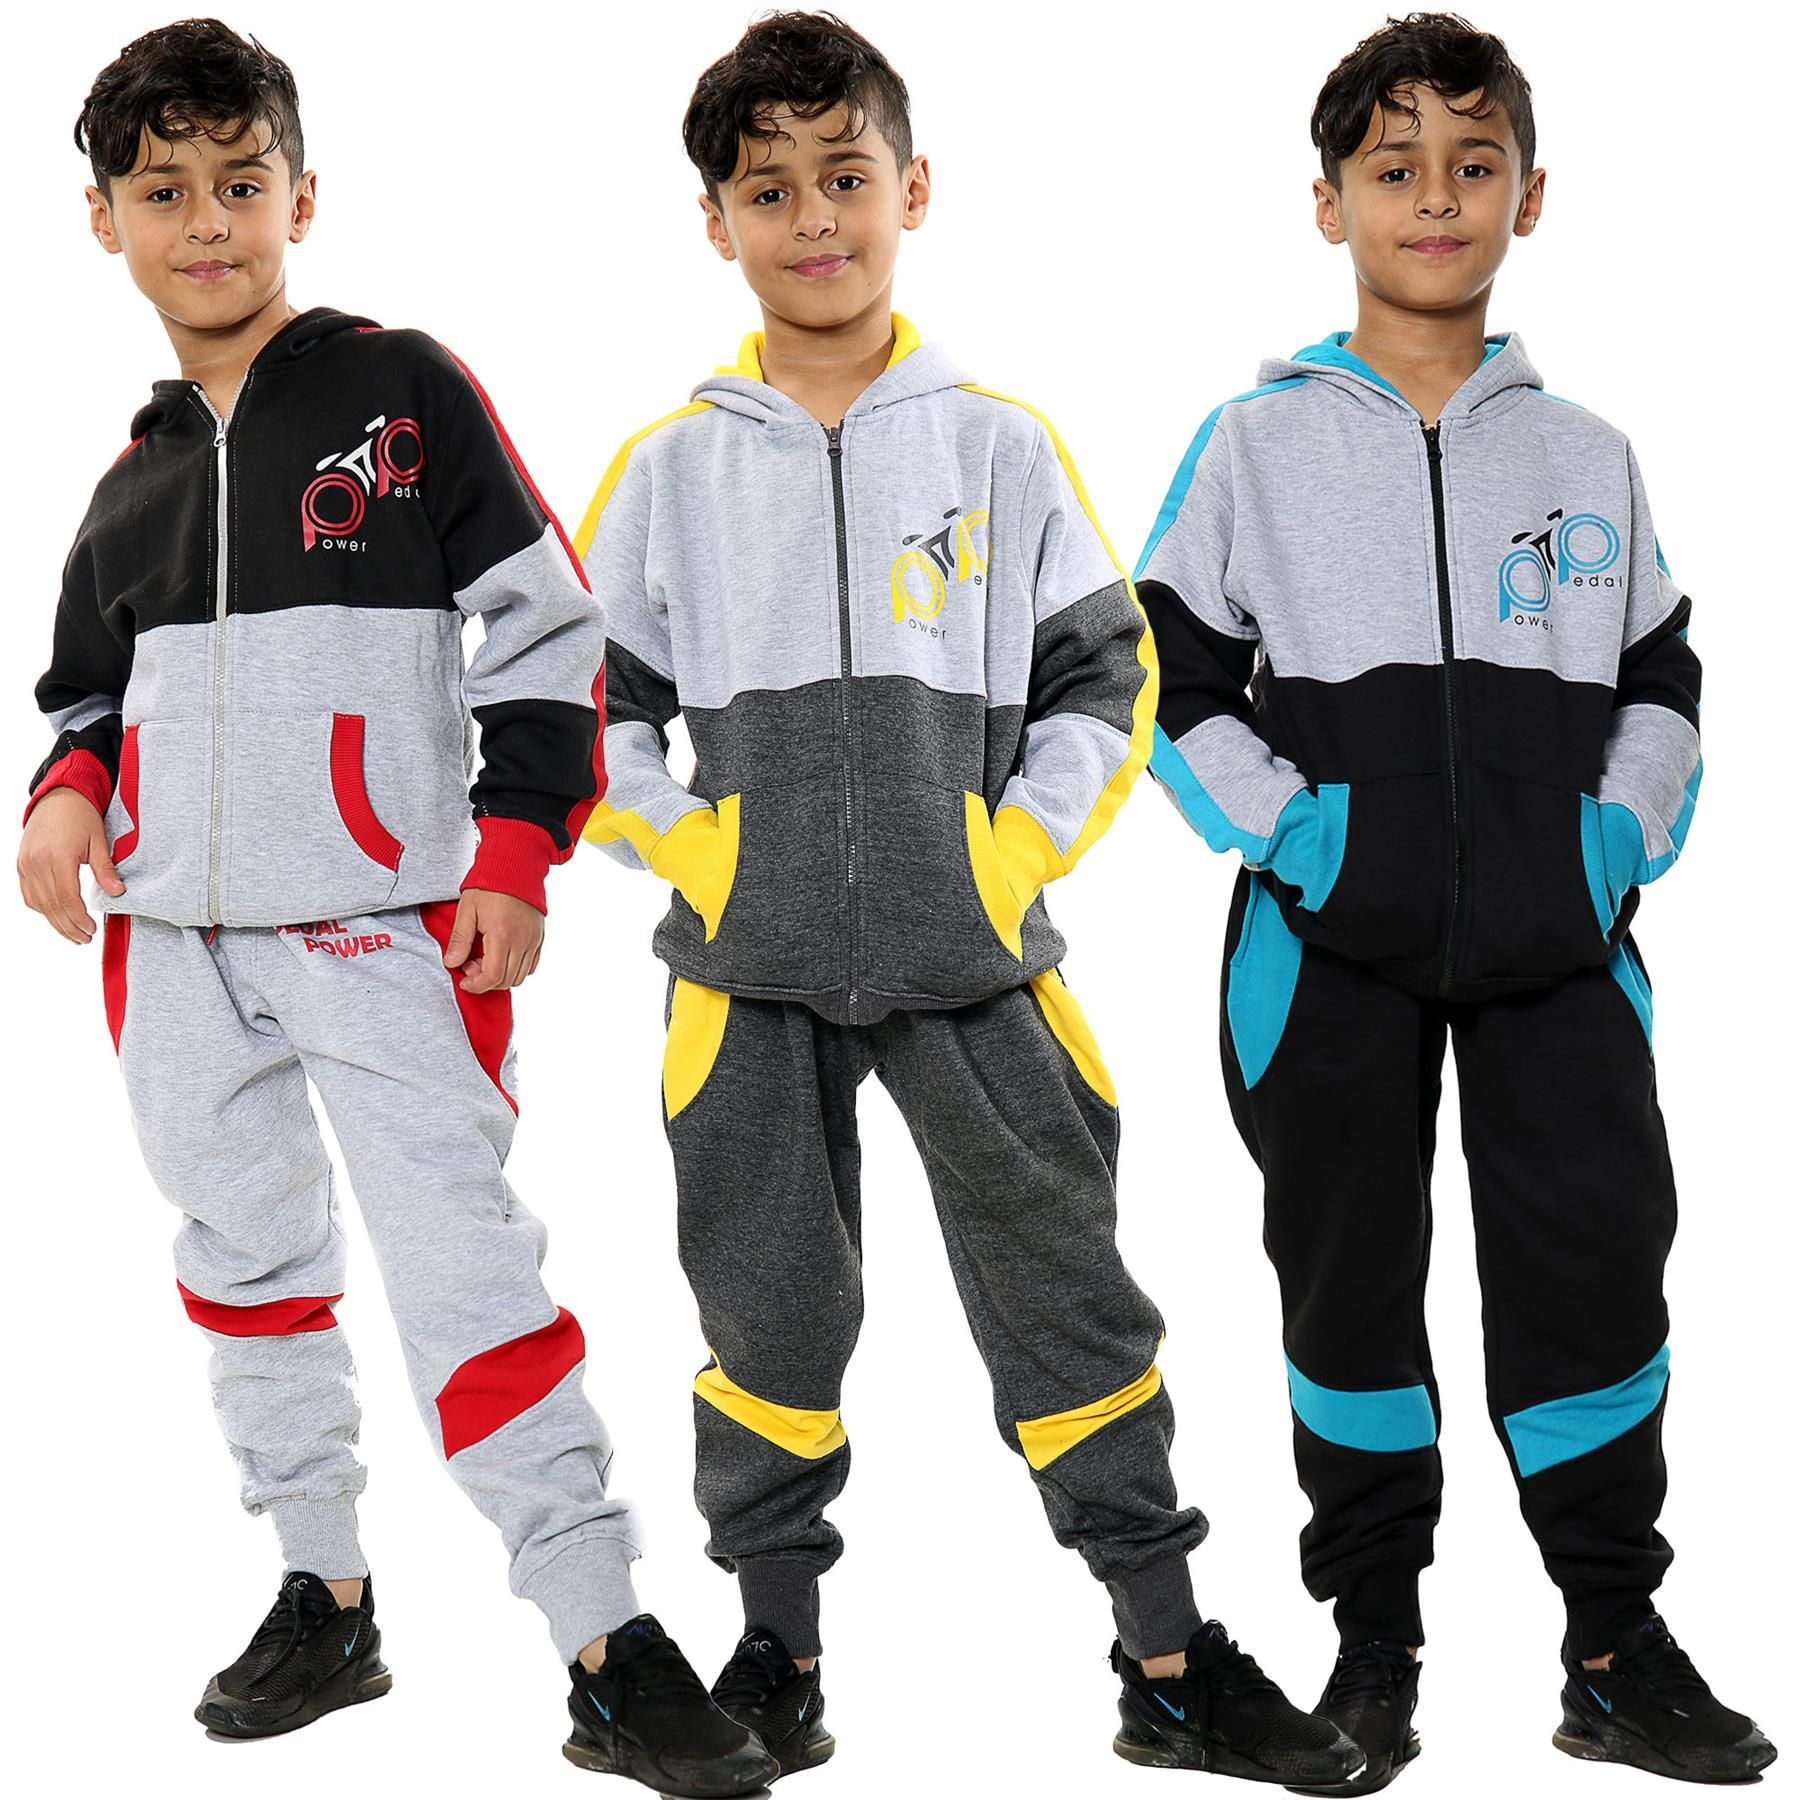 HNL Projection Boys Girls Tracksuit Hooded TOP Jogging Bottoms Kids Jogging Suits Age 5 6 7 8 9 10 11 12 13 Years Yellow